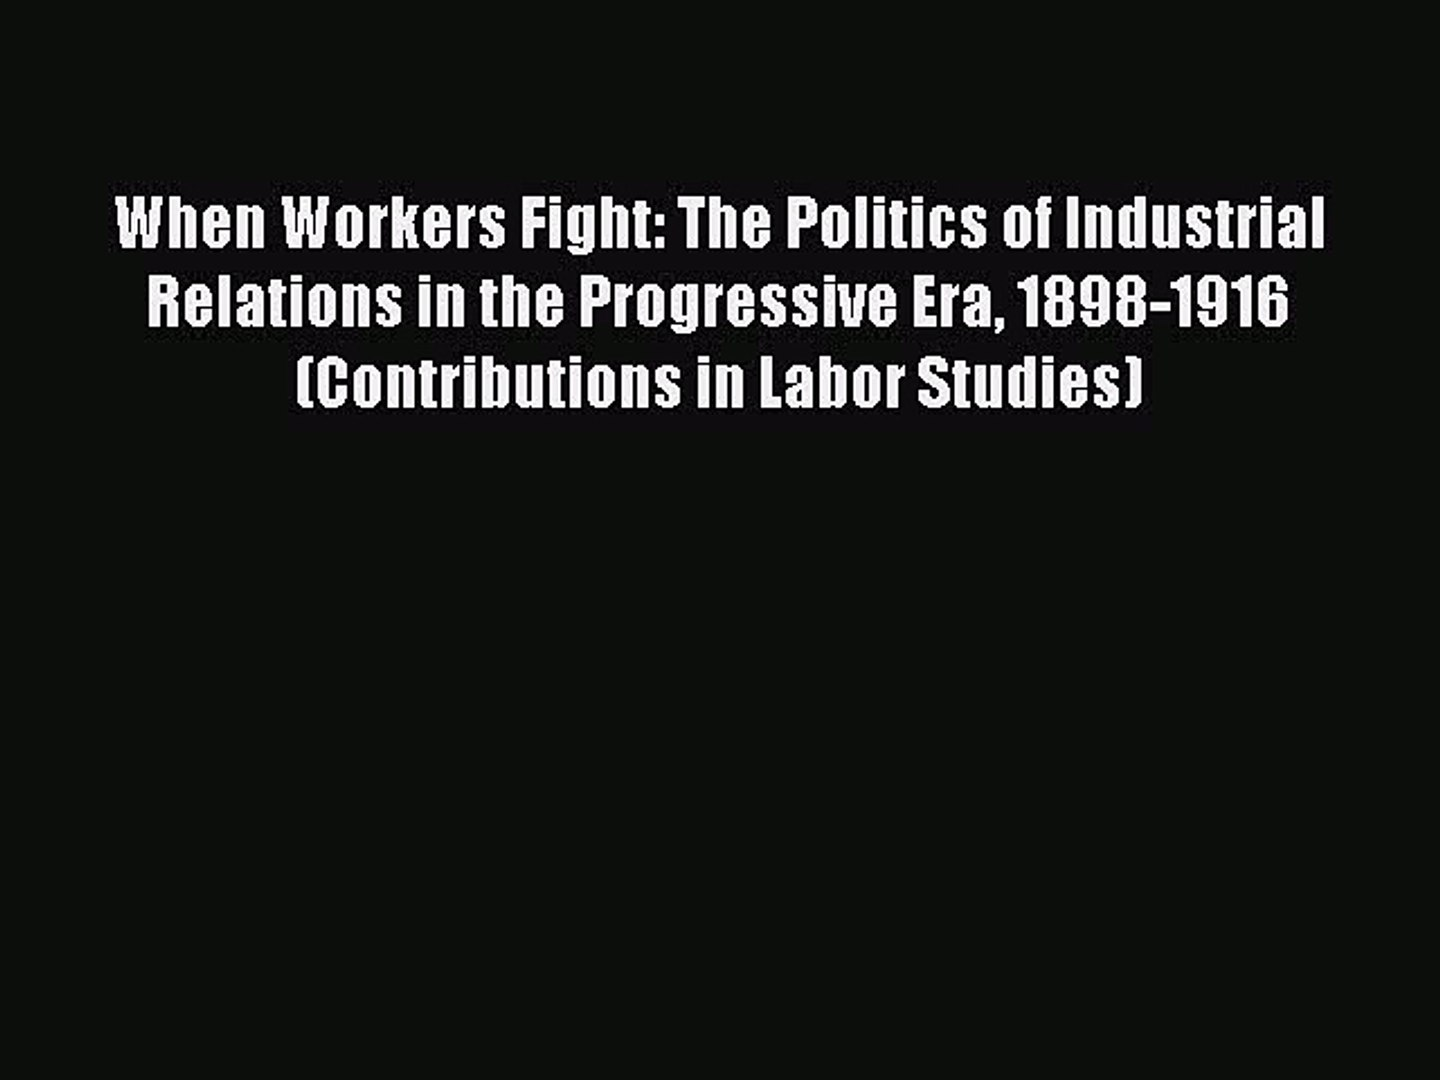 [PDF] When Workers Fight: The Politics of Industrial Relations in the Progressive Era 1898-1916